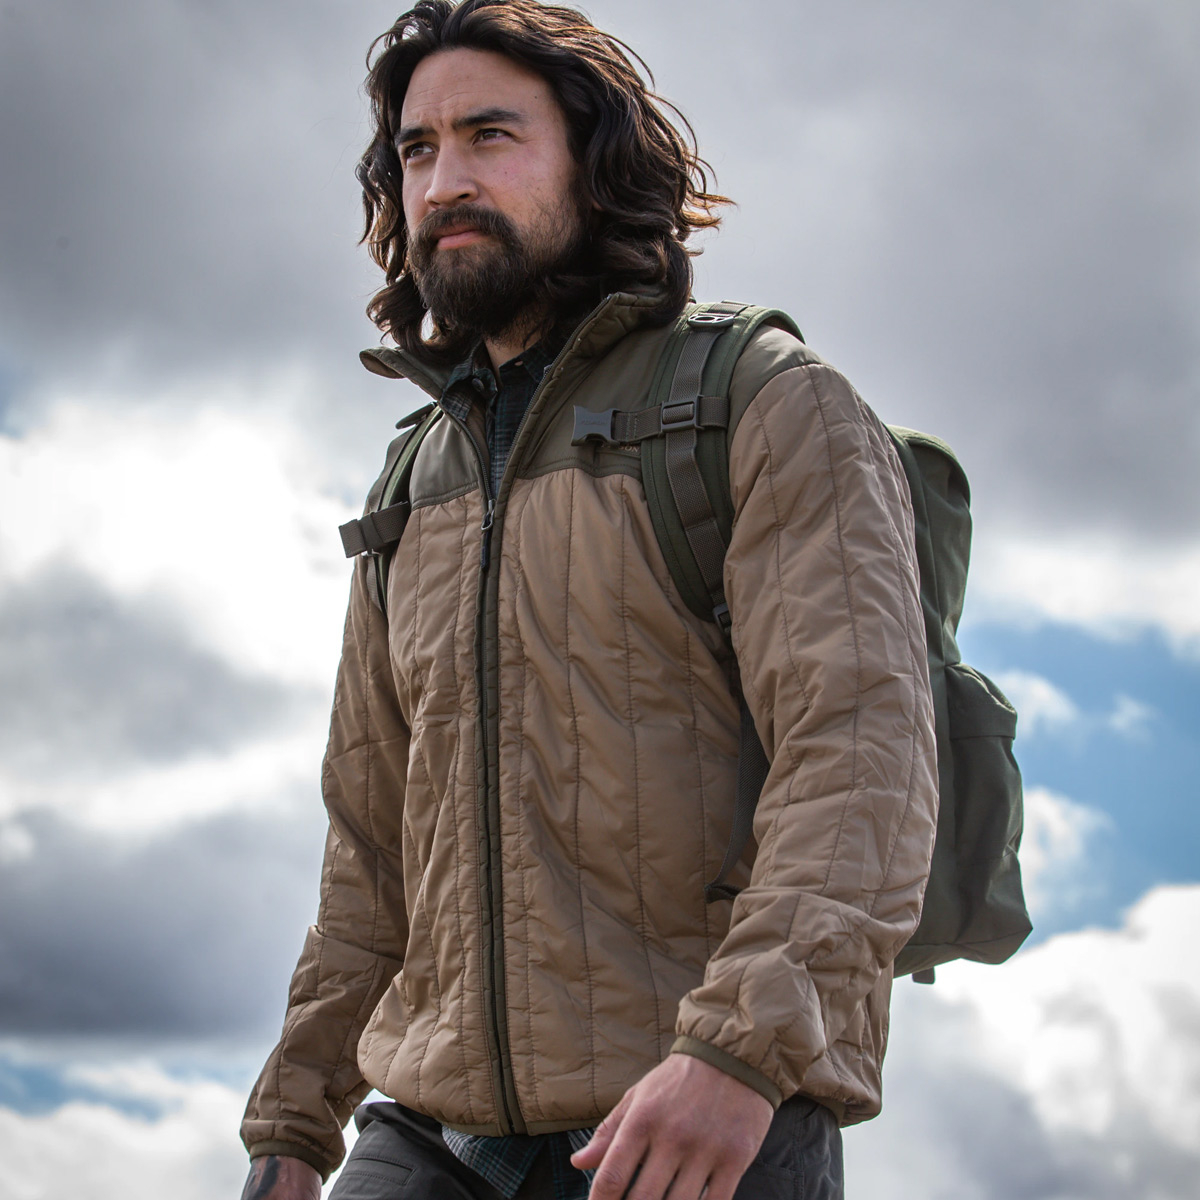 Filson Ultra Light Jacket Dark Tan, perfect as an outer layer or underneath a heavy jacket for warmth in extreme cold